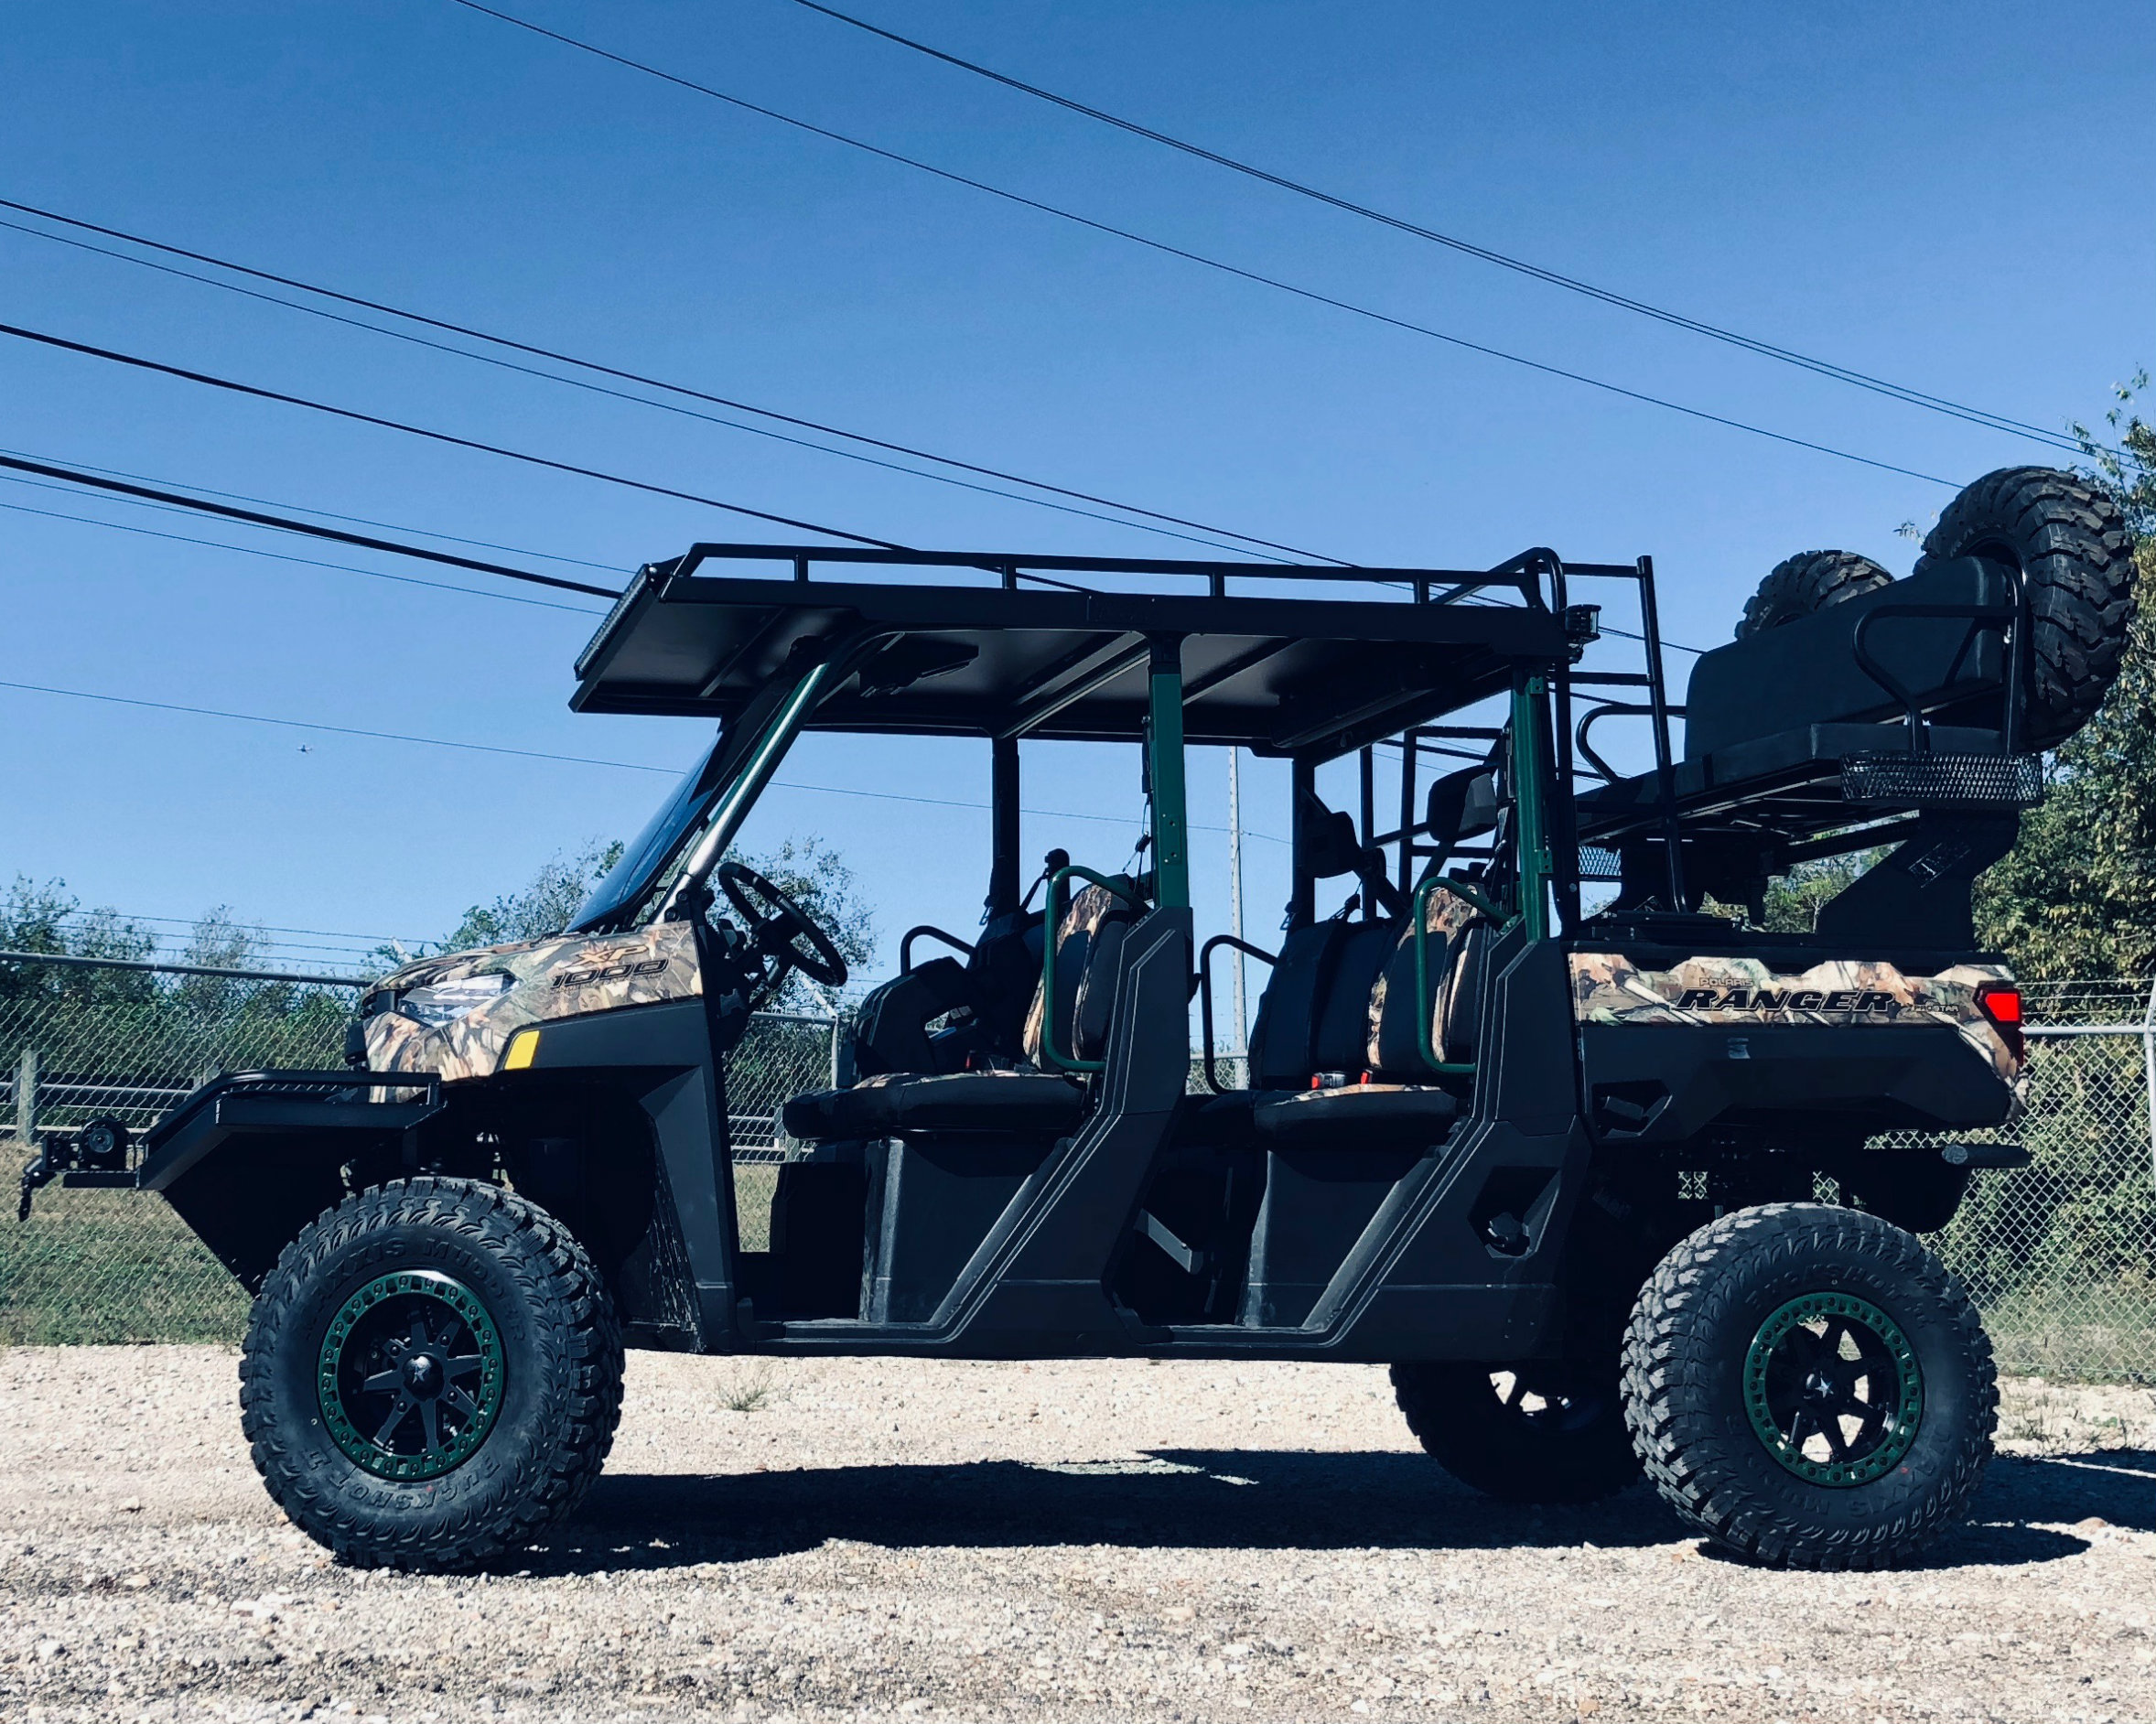 polaris-ranger-1000-2019-ranger-crew-metal-top-utility-roof-with-lights-and-stereo.jpg